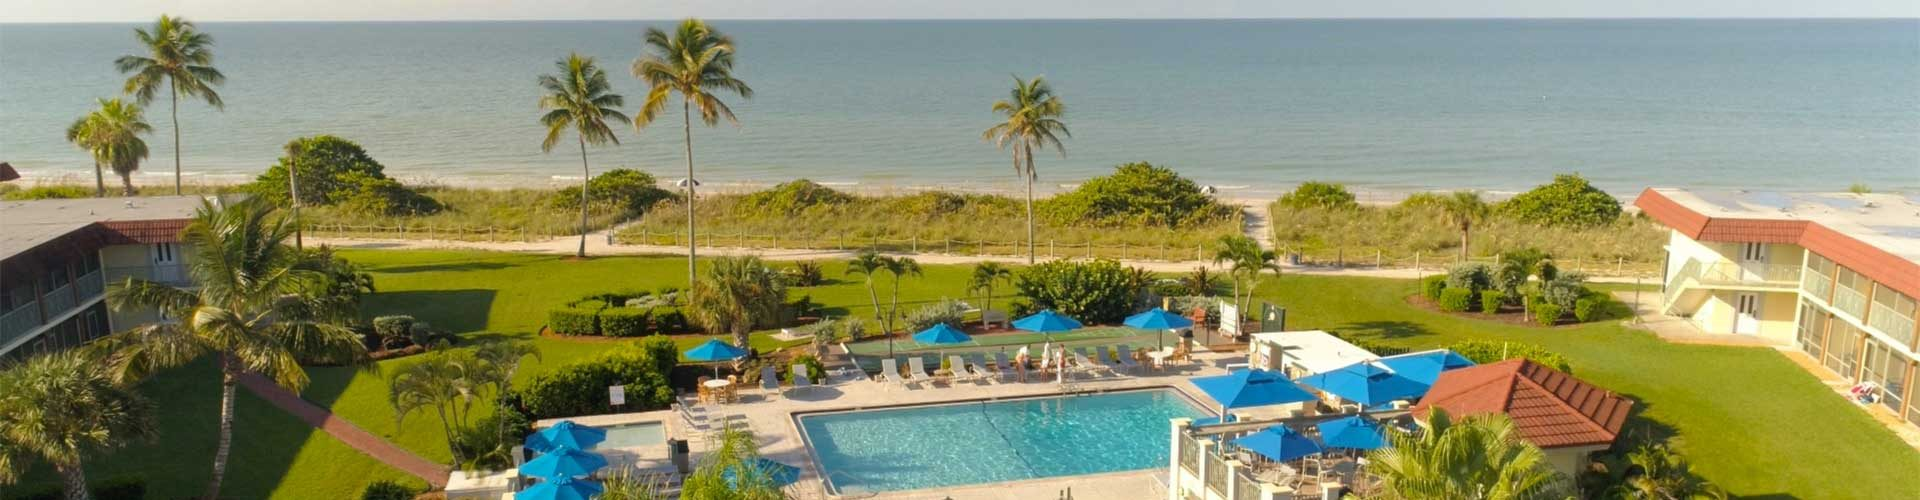 Win 50 Free Sanibel Island Vacations to Celebrate 50 Years of West Wind Inn.